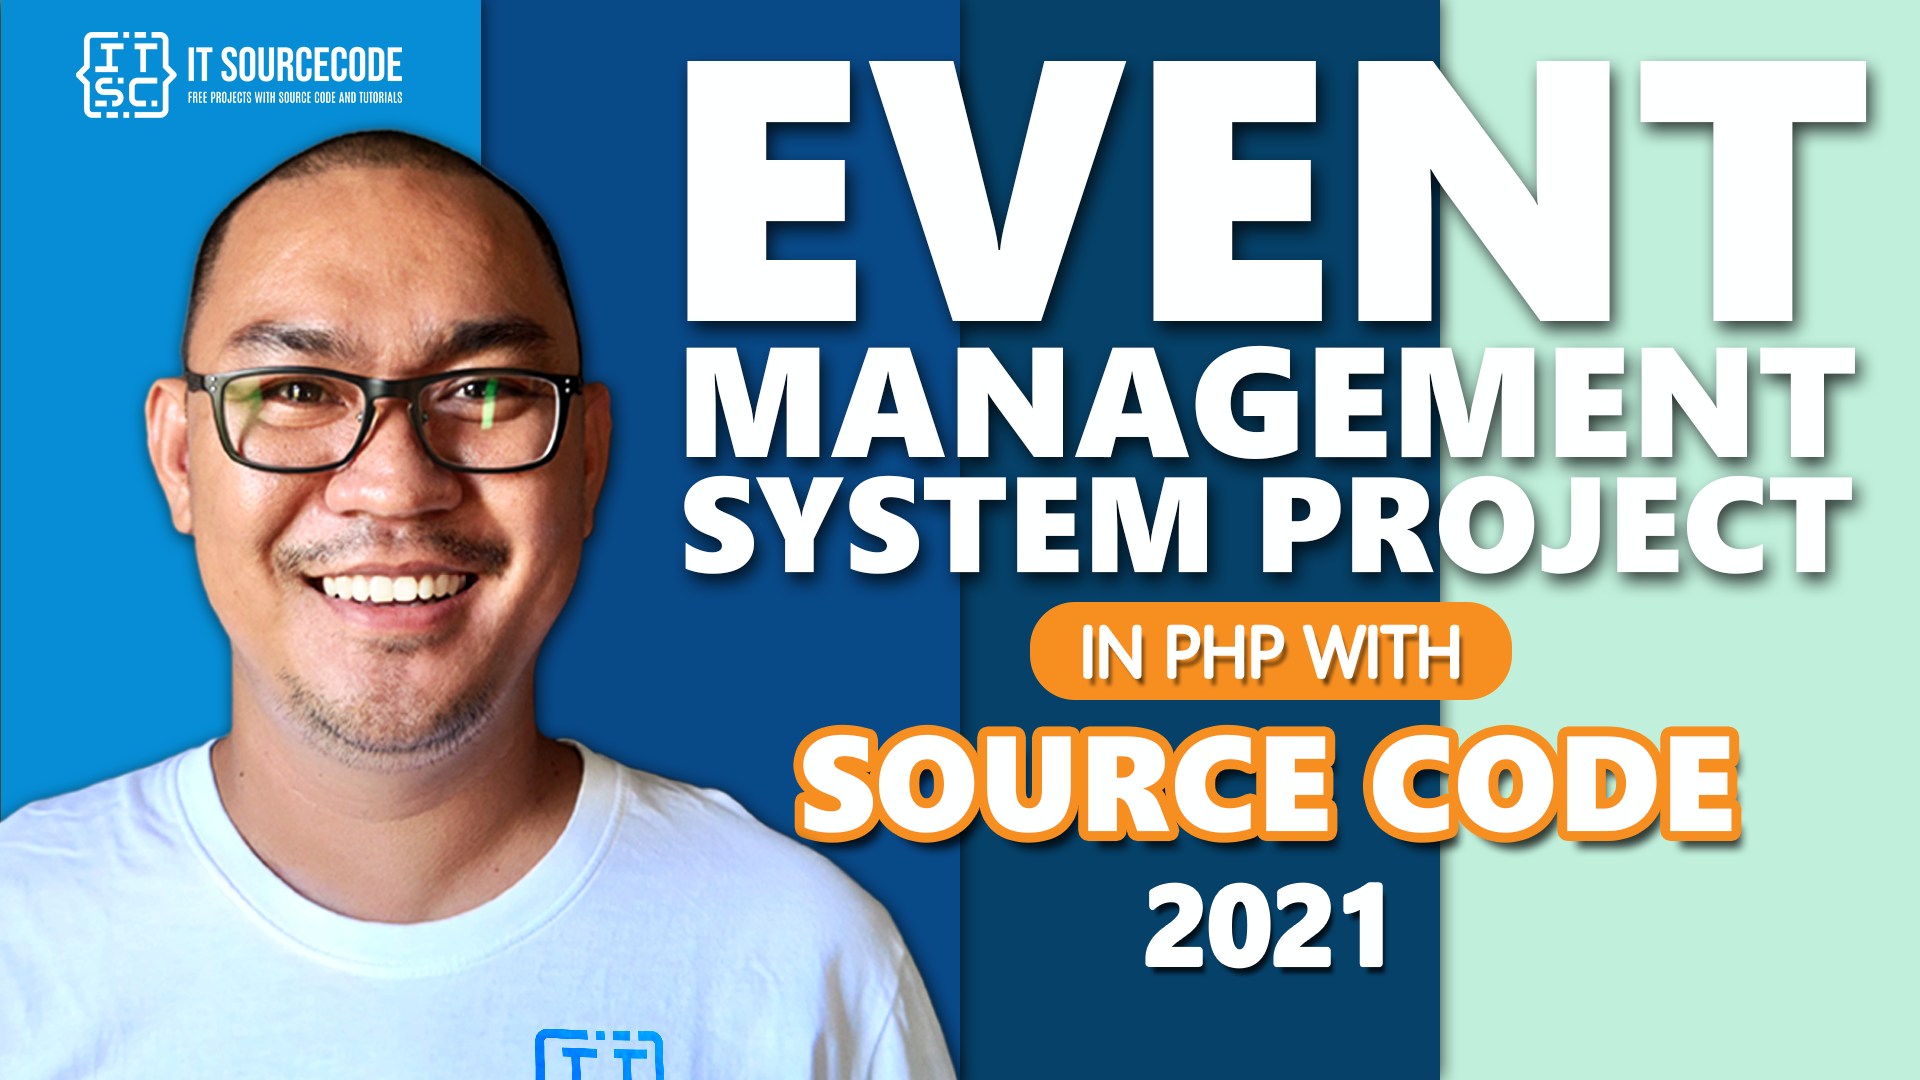 Event Management System Project in PHP with Source Code